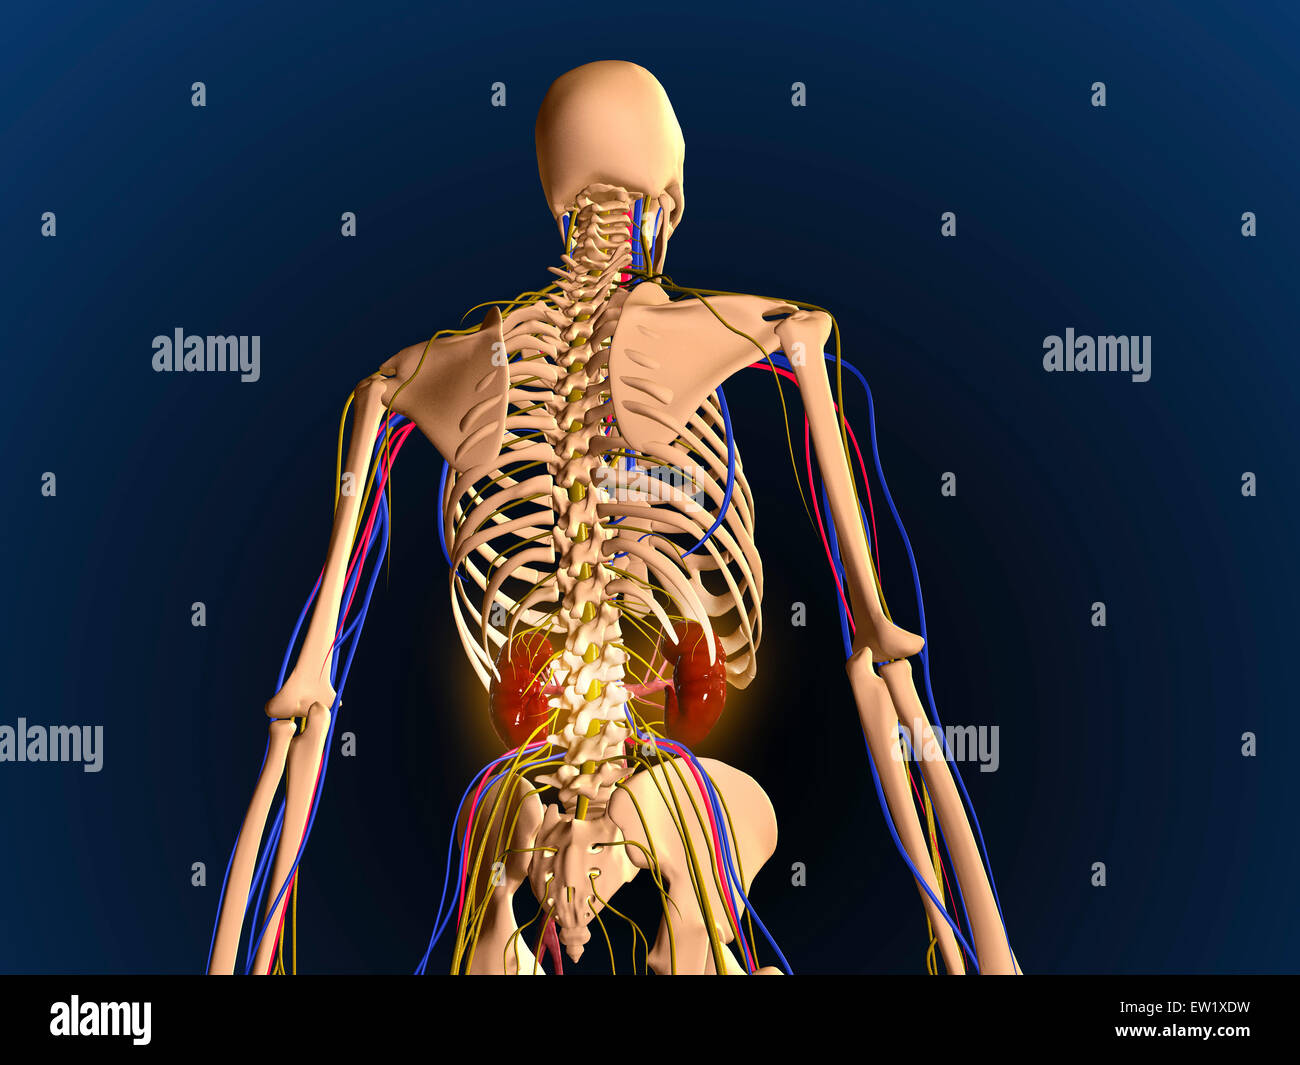 human skeleton showing kidneys and nervous system stock photo, Skeleton